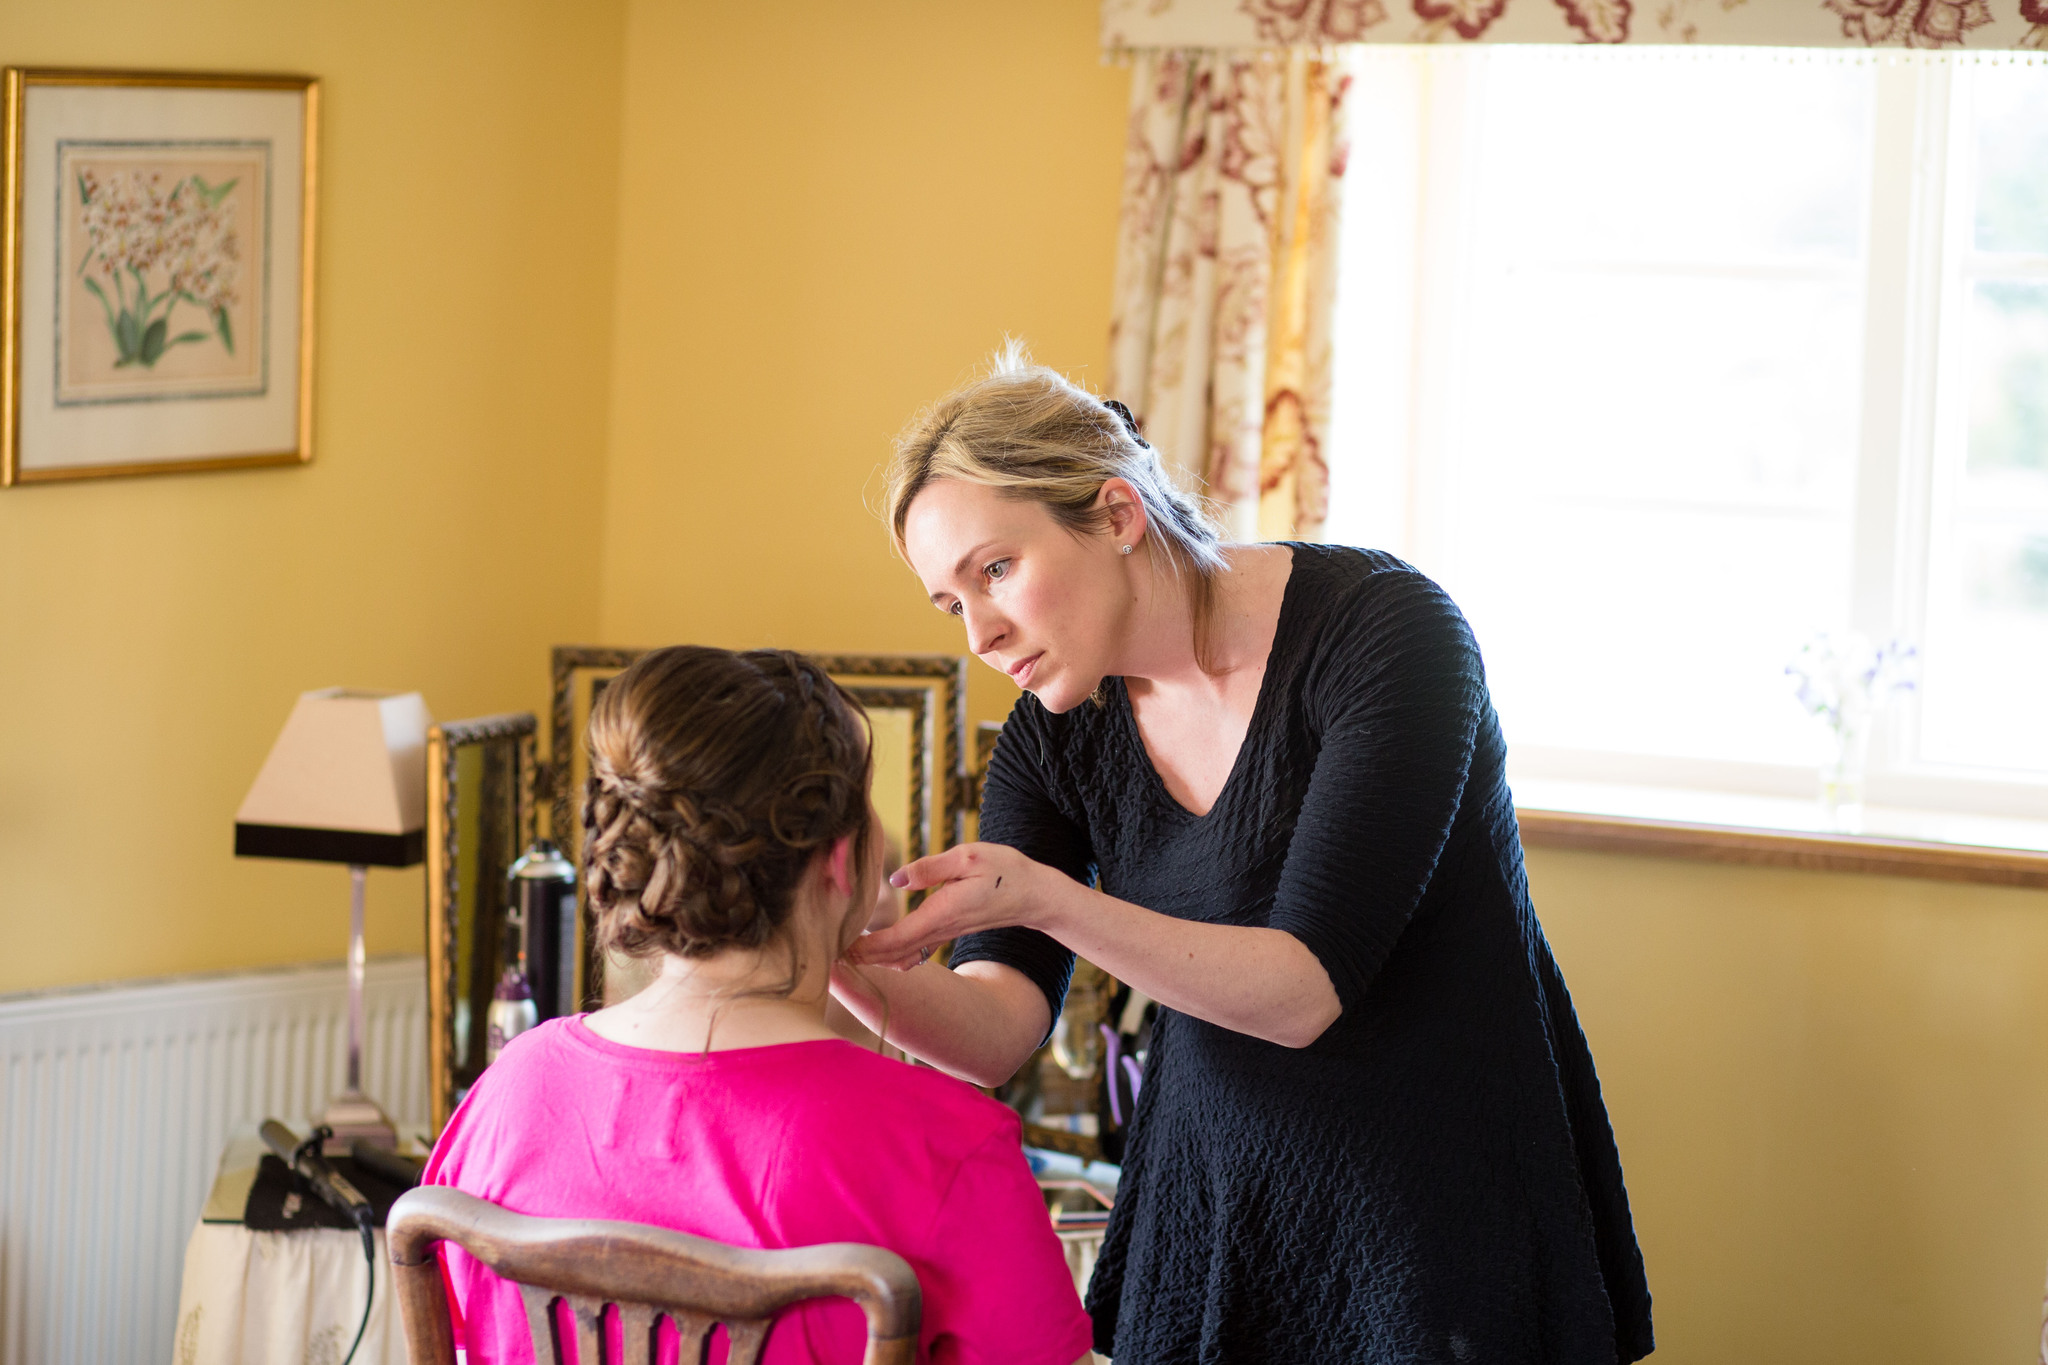 Having make up done bride in bright pink t shirt